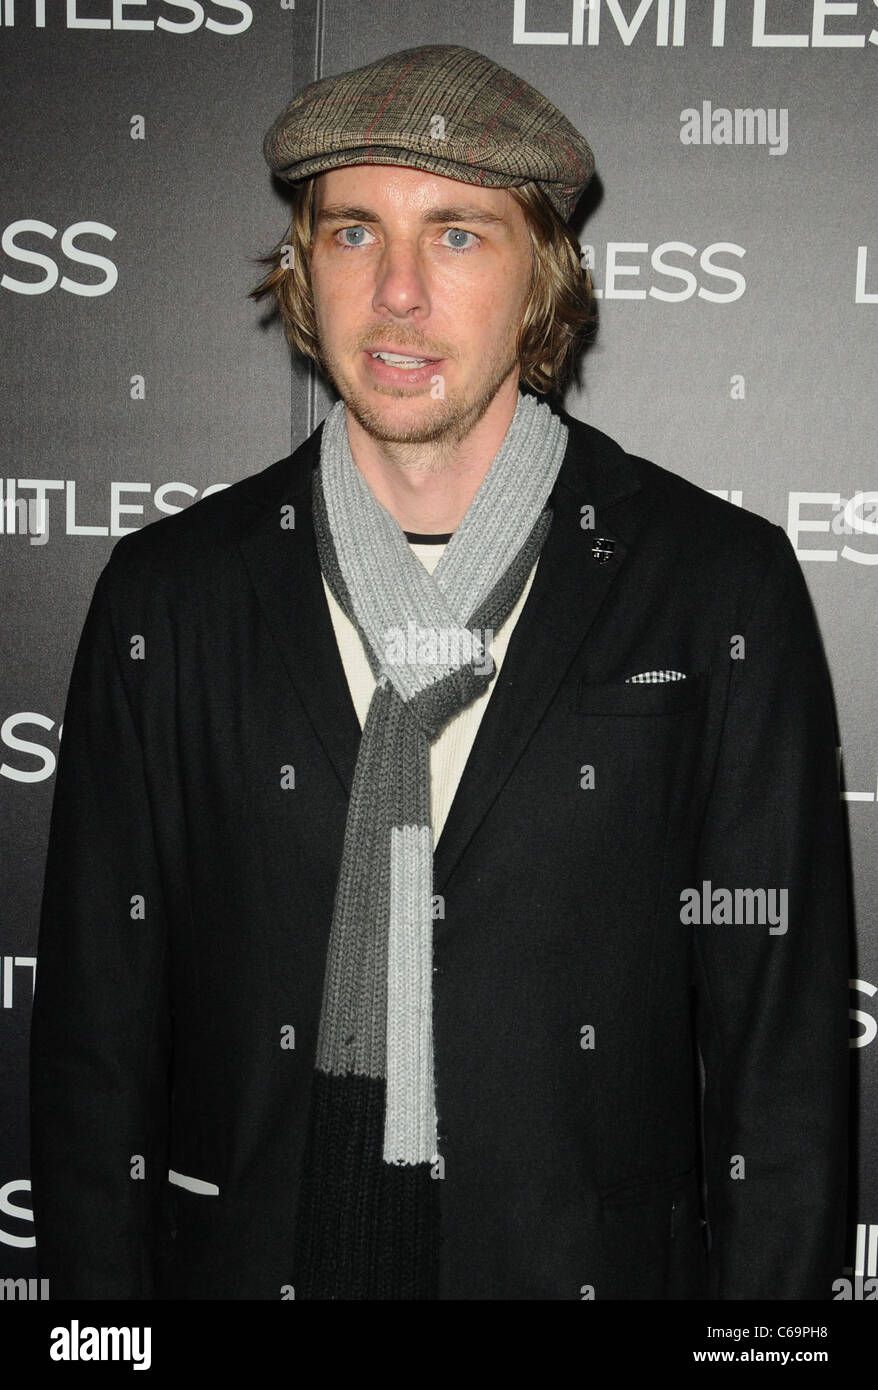 Dax Shepard at arrivals for LIMITLESS Premiere, Arclight Hollywood, Los Angeles, CA March 3, 2011. Photo By: Dee - Stock Image